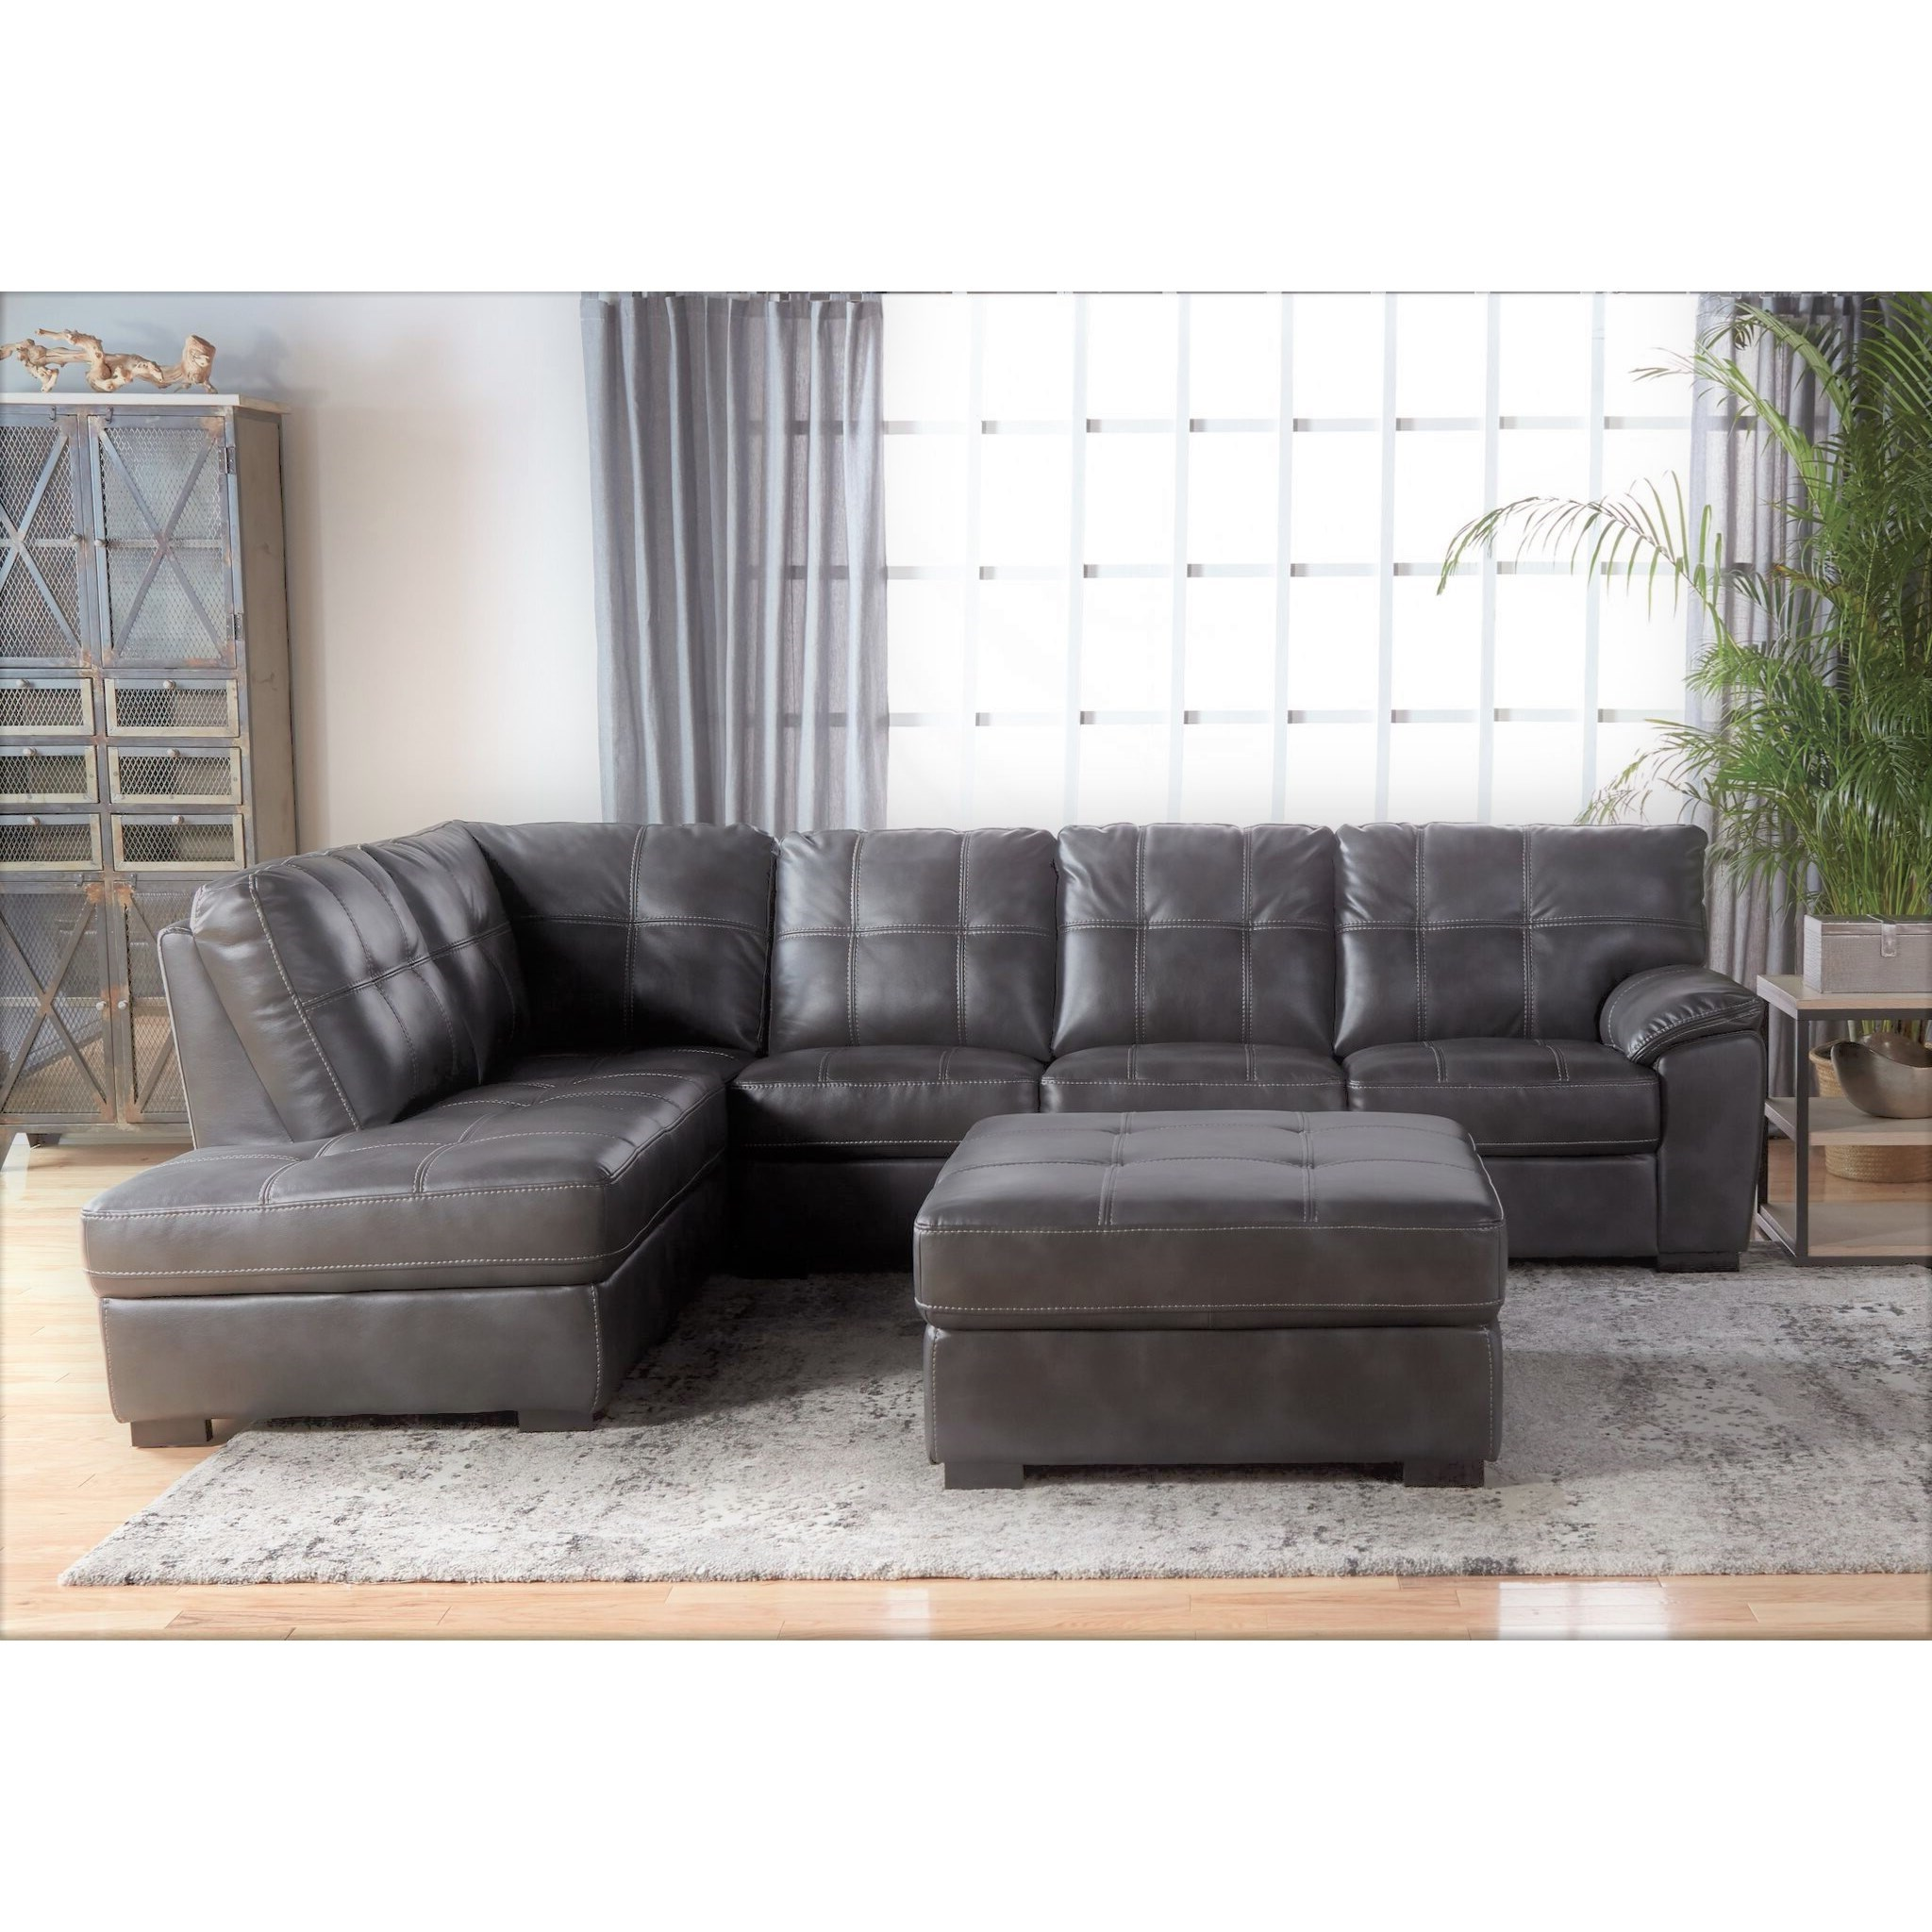 5312 Tufted Sectional with Bumper Chaise by Cheers at Lagniappe Home Store